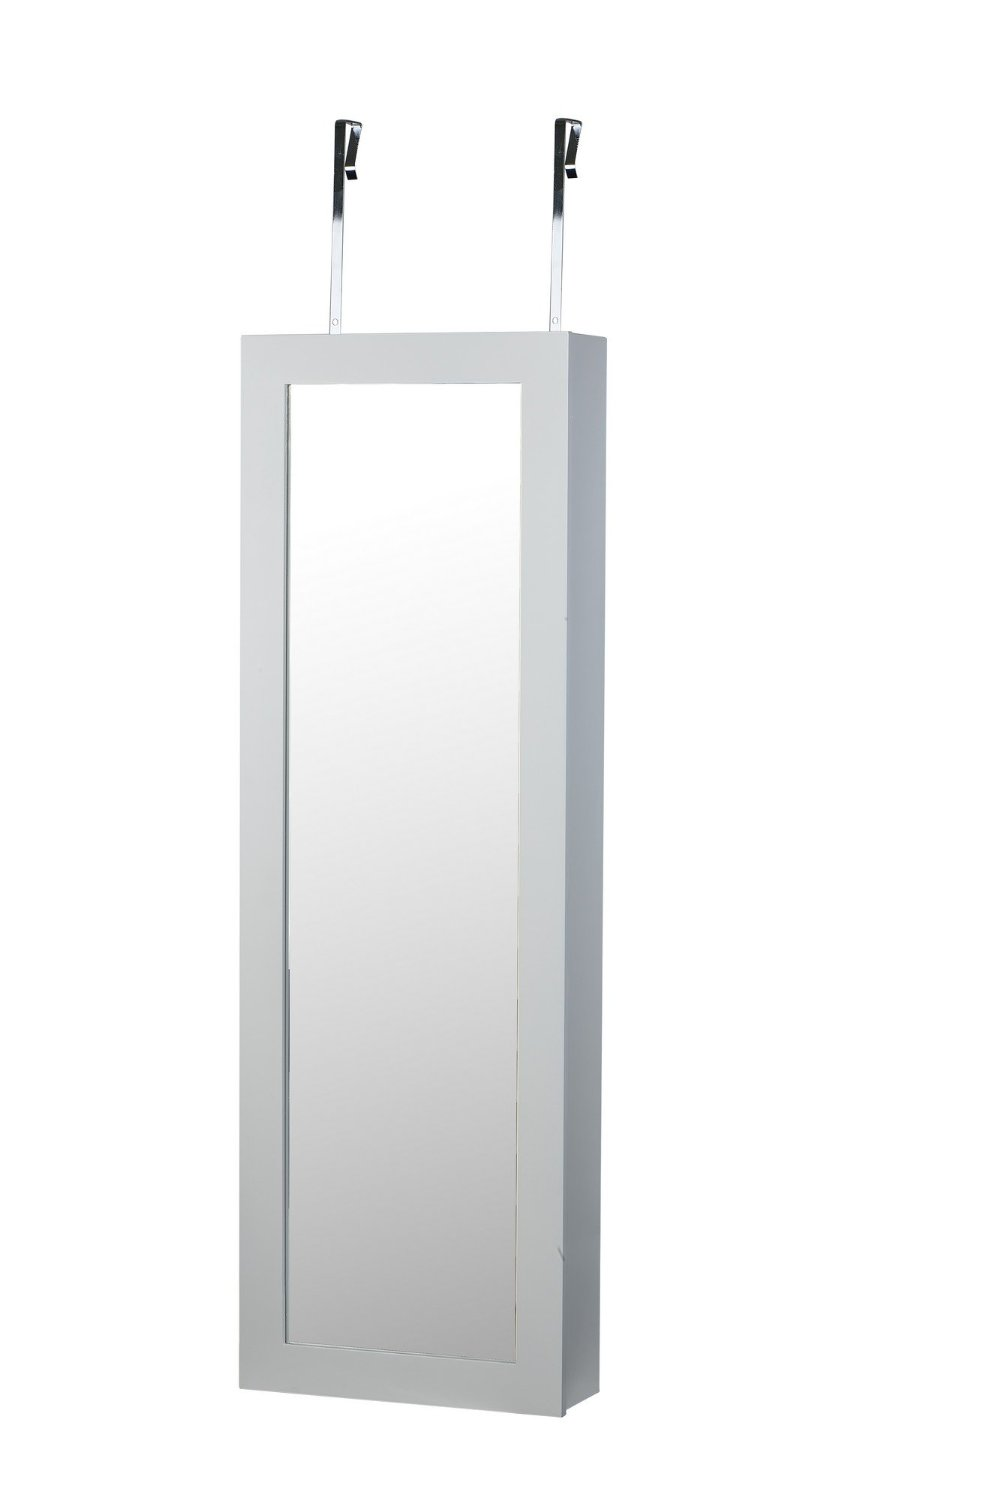 White Makeup Cosmetic Organizer Cheval Mirror Over Door Wall Mount Hang Jewelry Cabinet Armoire vanity table